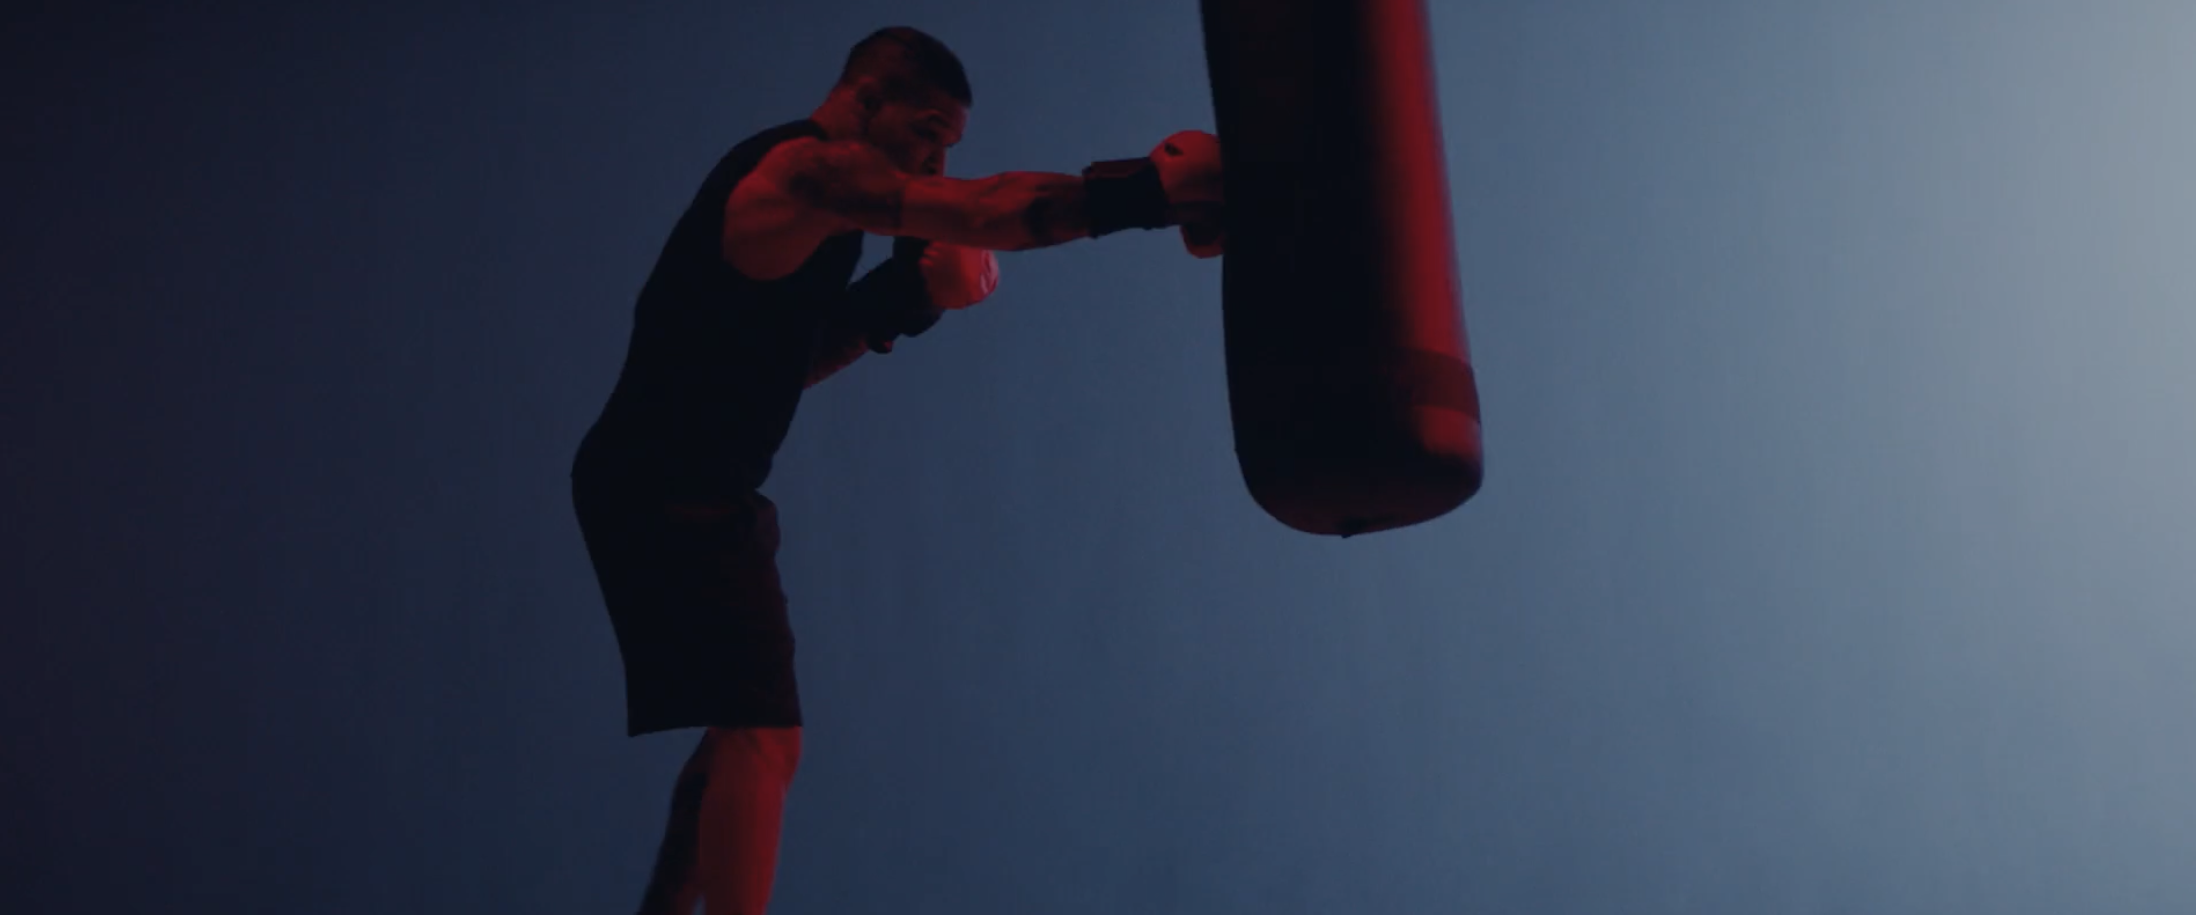 Lululemon / Director Francesco Calabrese - Creative Researcher Daniel M Hudson